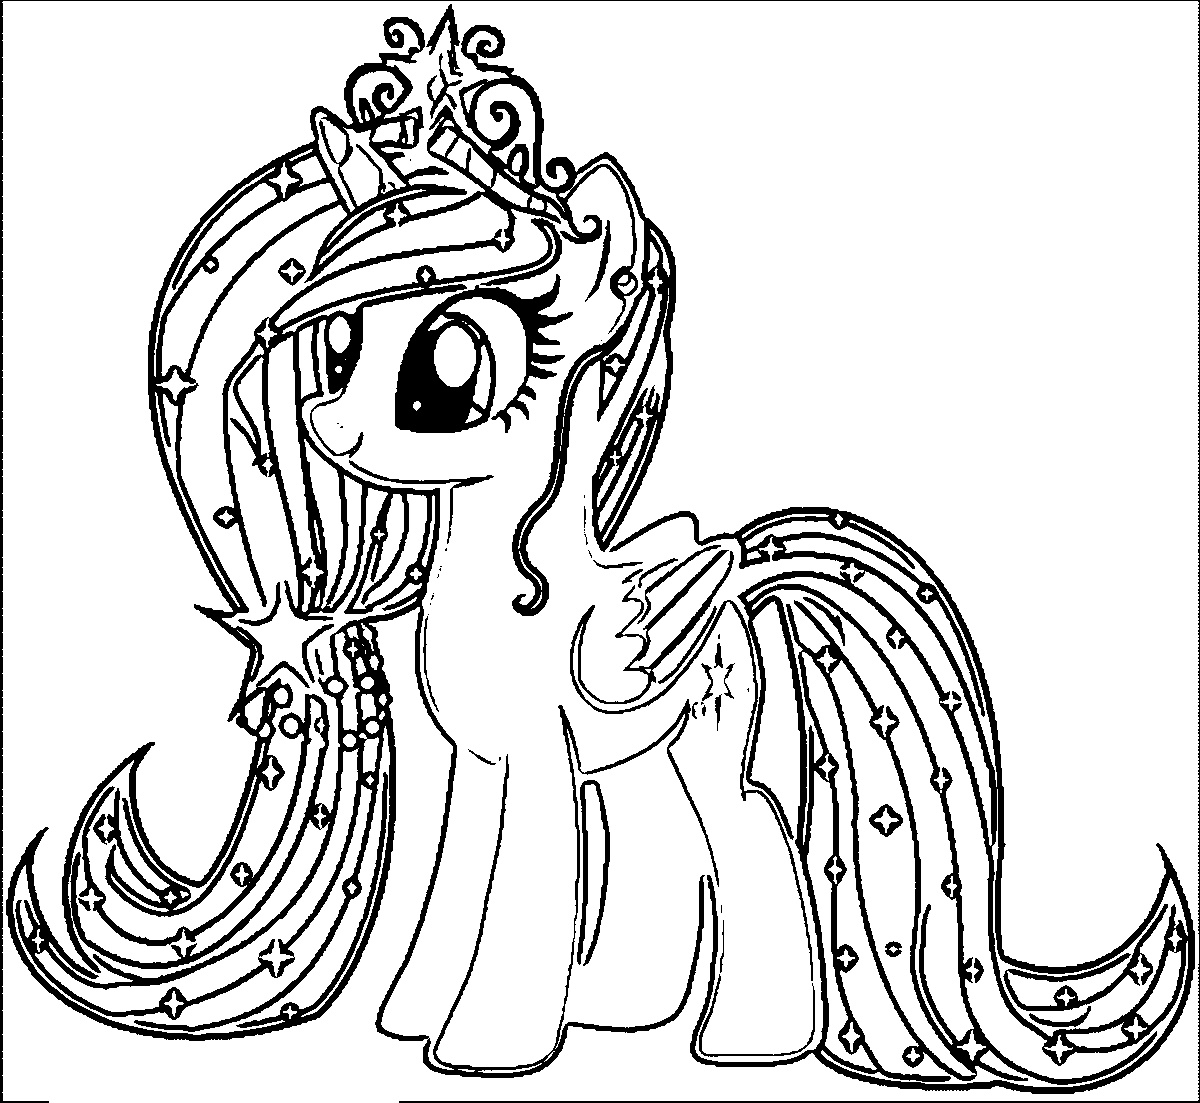 mlp coloring pony coloring pages free download on clipartmag mlp coloring